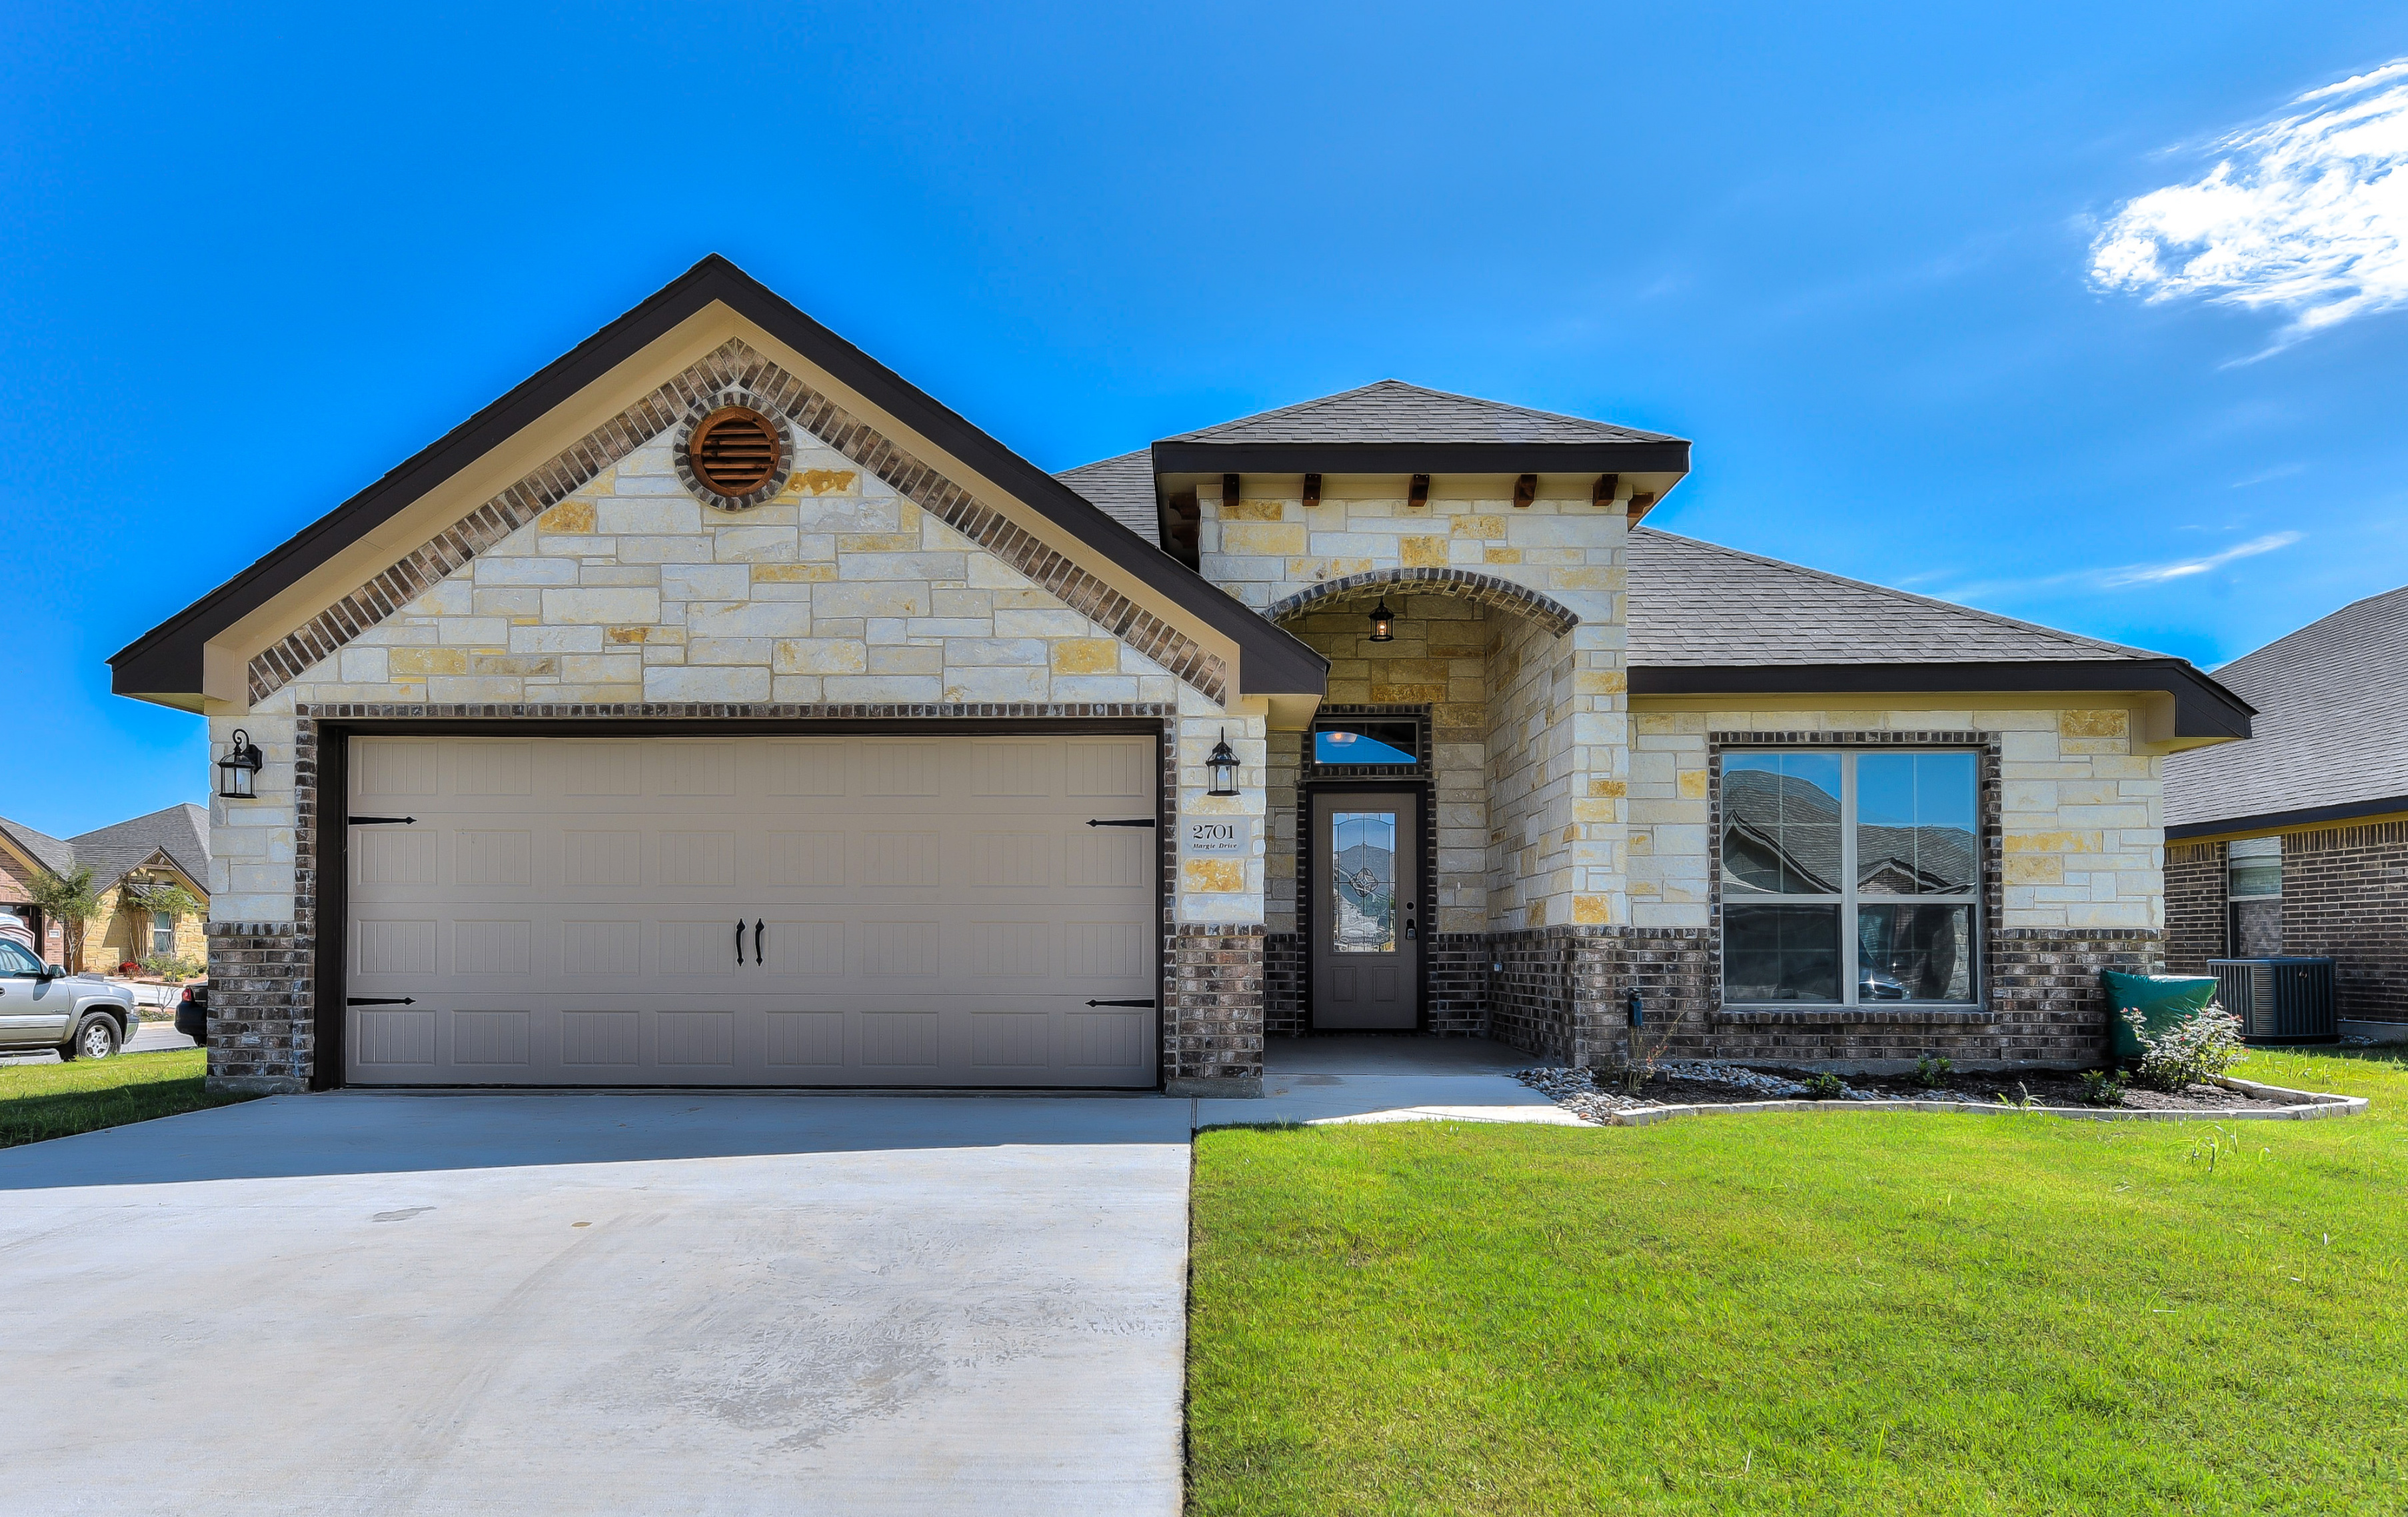 2701 Margie for Sale in the Plains at Riverside Temple TX